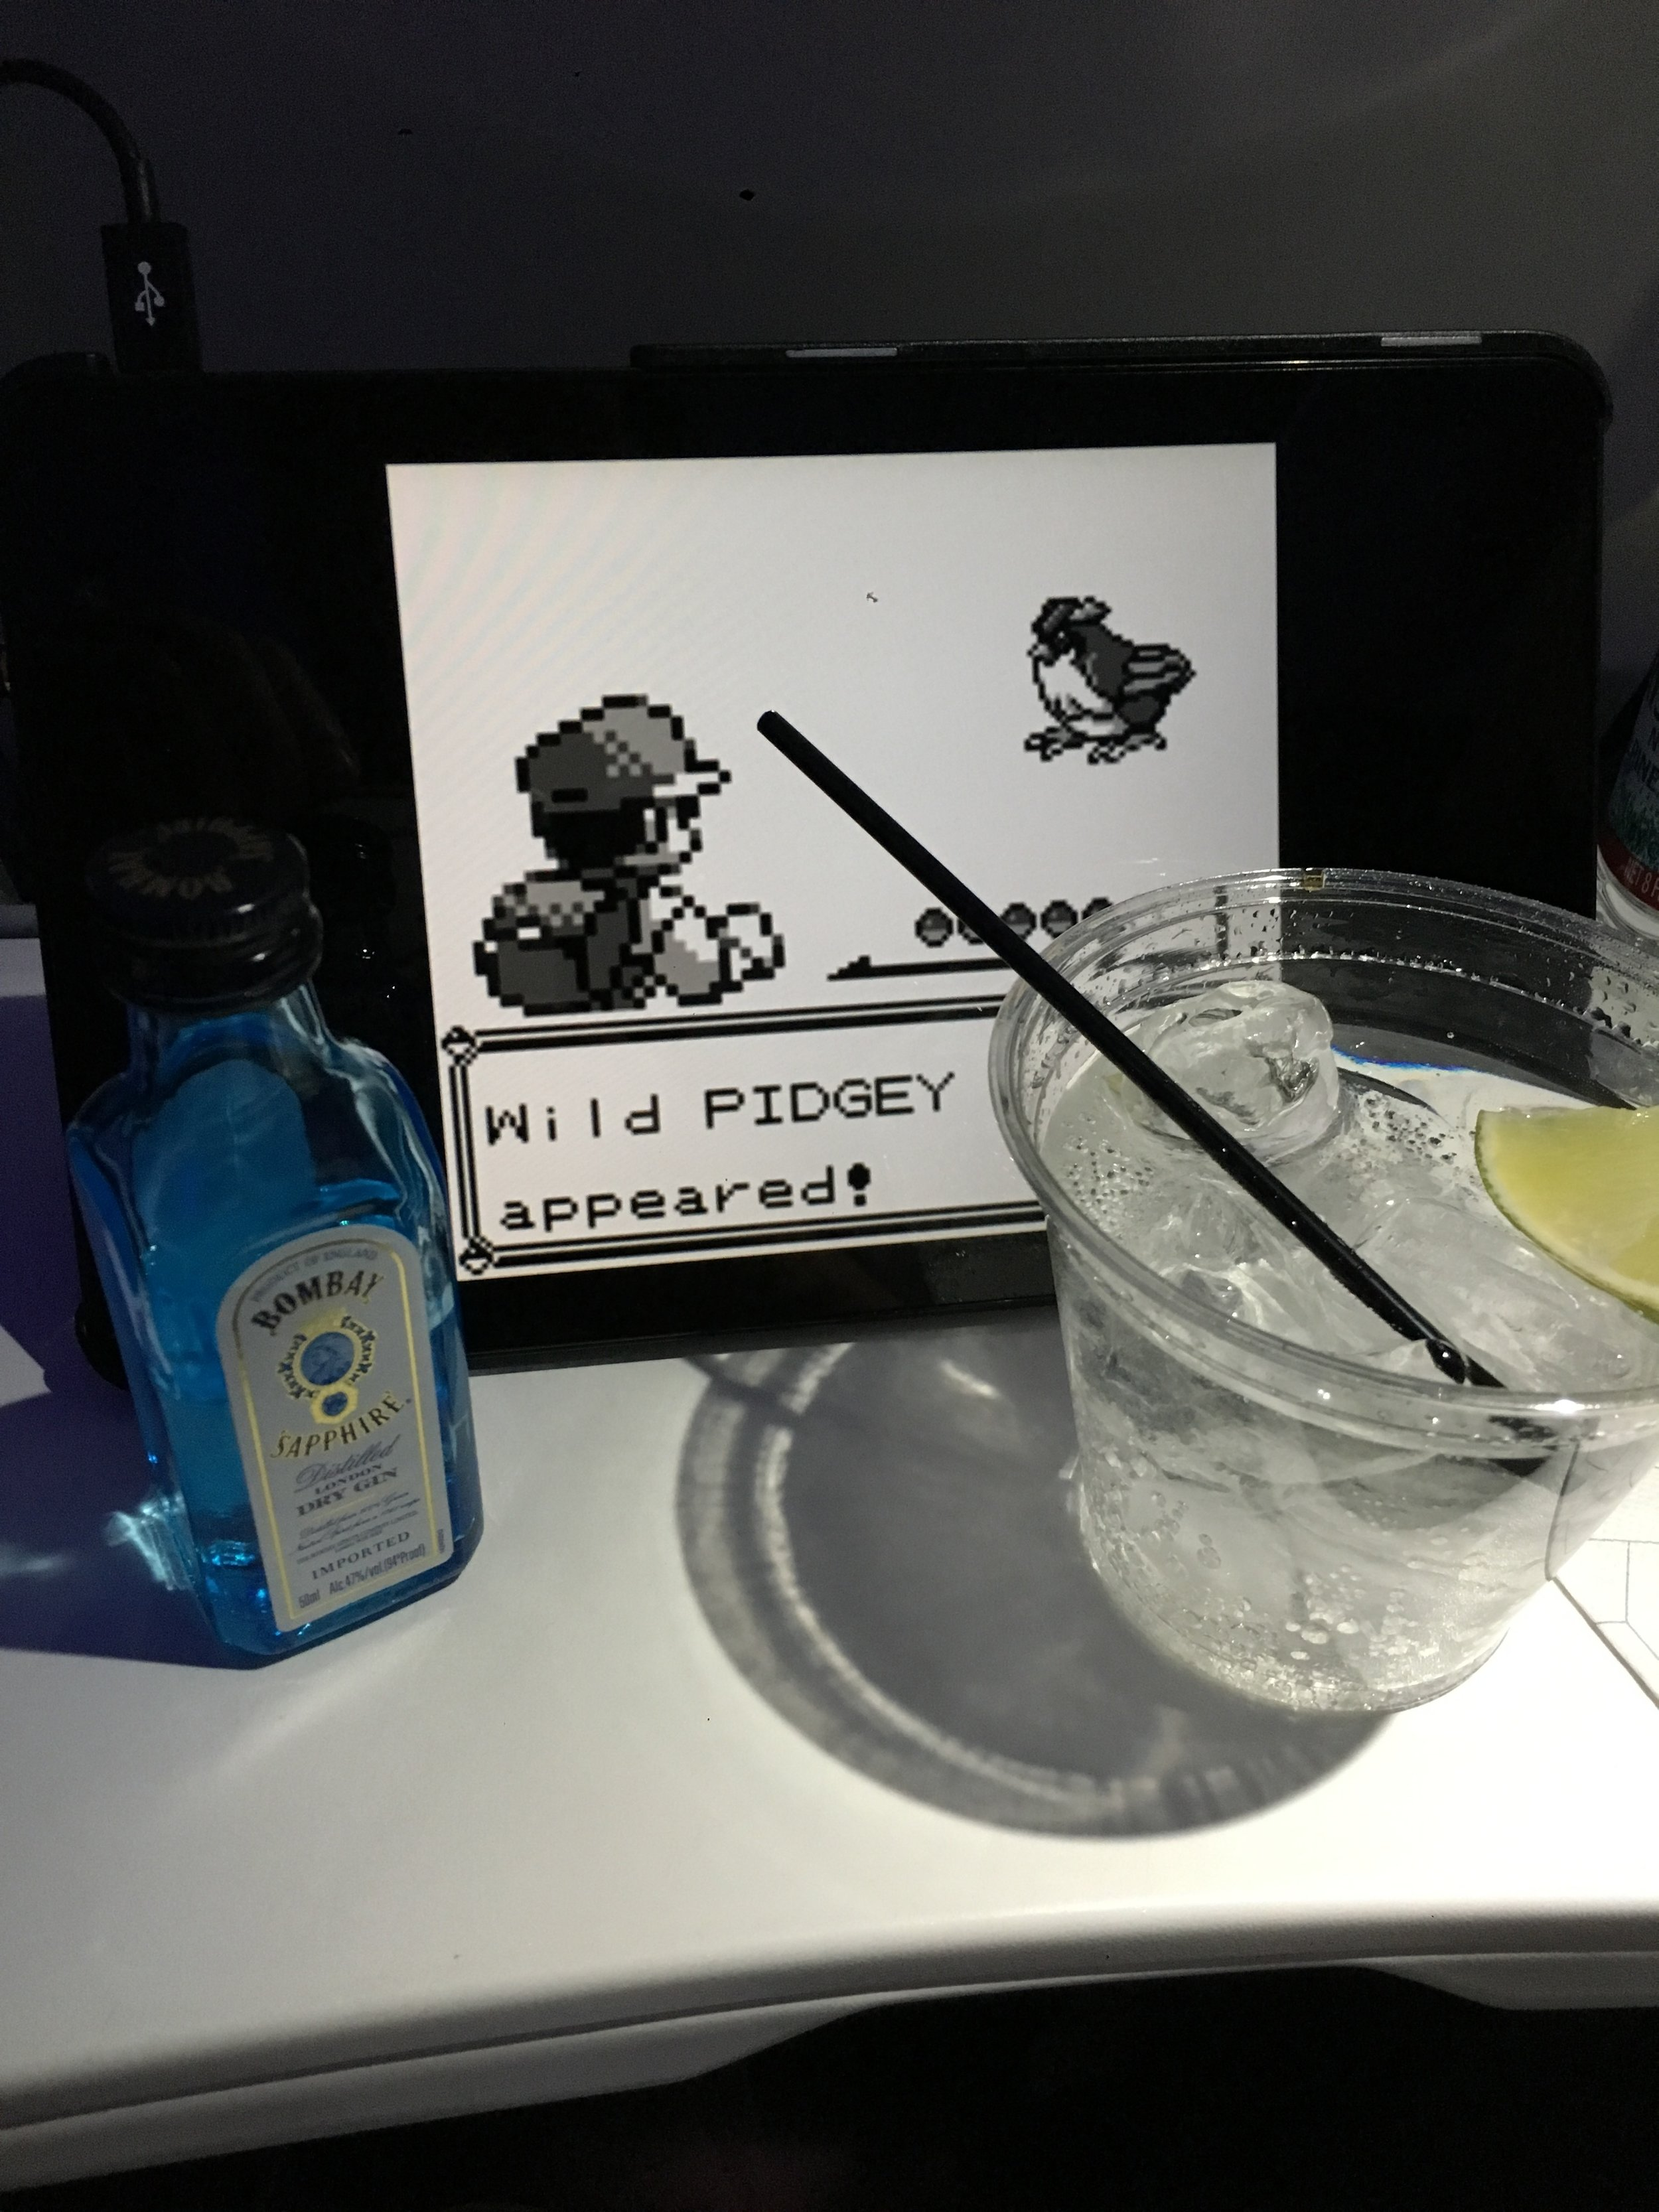 Airplane seats aren't so bad this way.